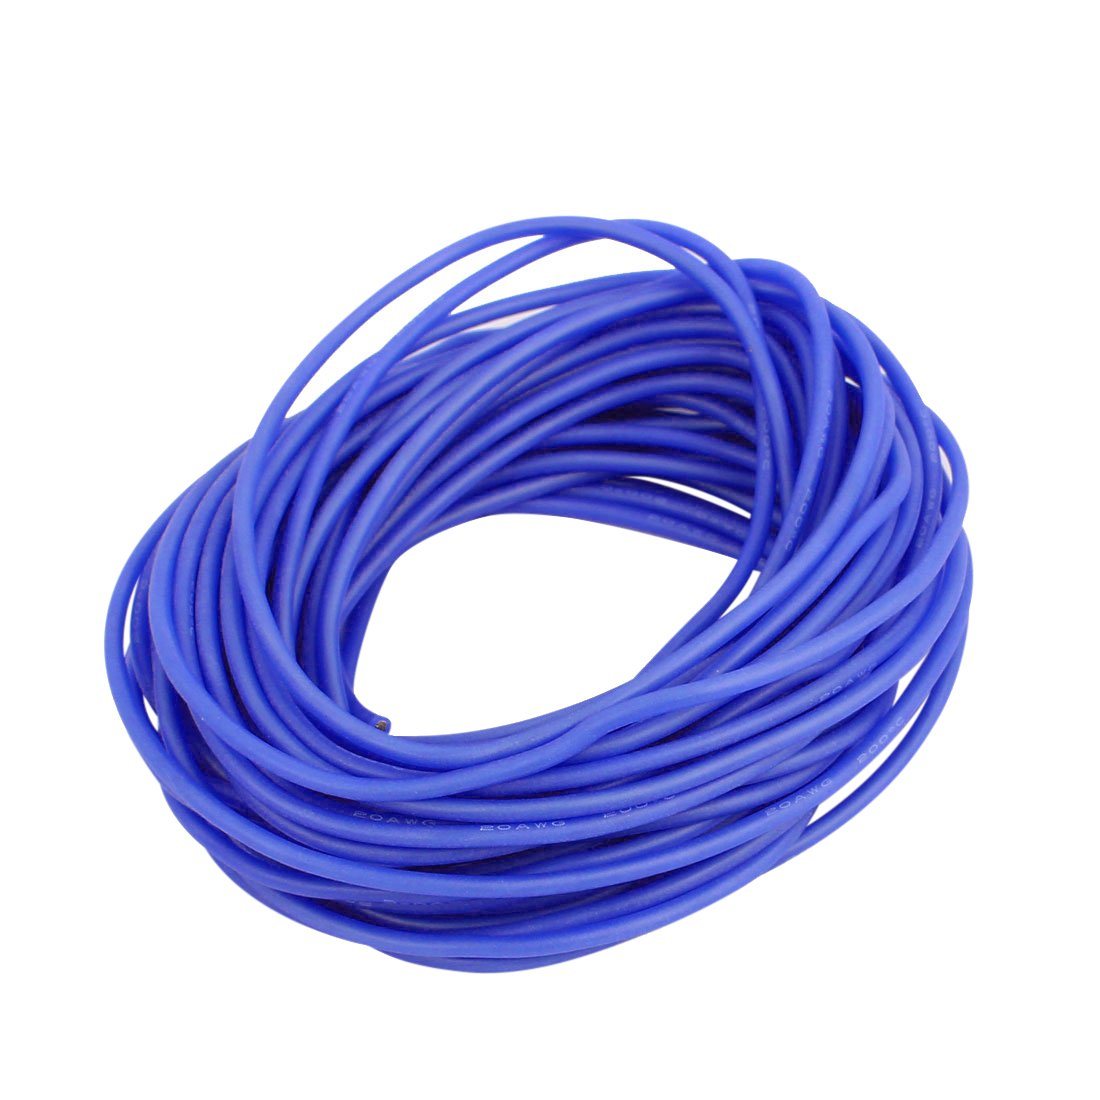 uxcell 30 AWG Stranded Wire Flexible Silicone Electrical Cable 1.6 Feet 0.5m 30 Gauge Copper Cord High Temperature Resistant Yellow for DIY RC Aircraft